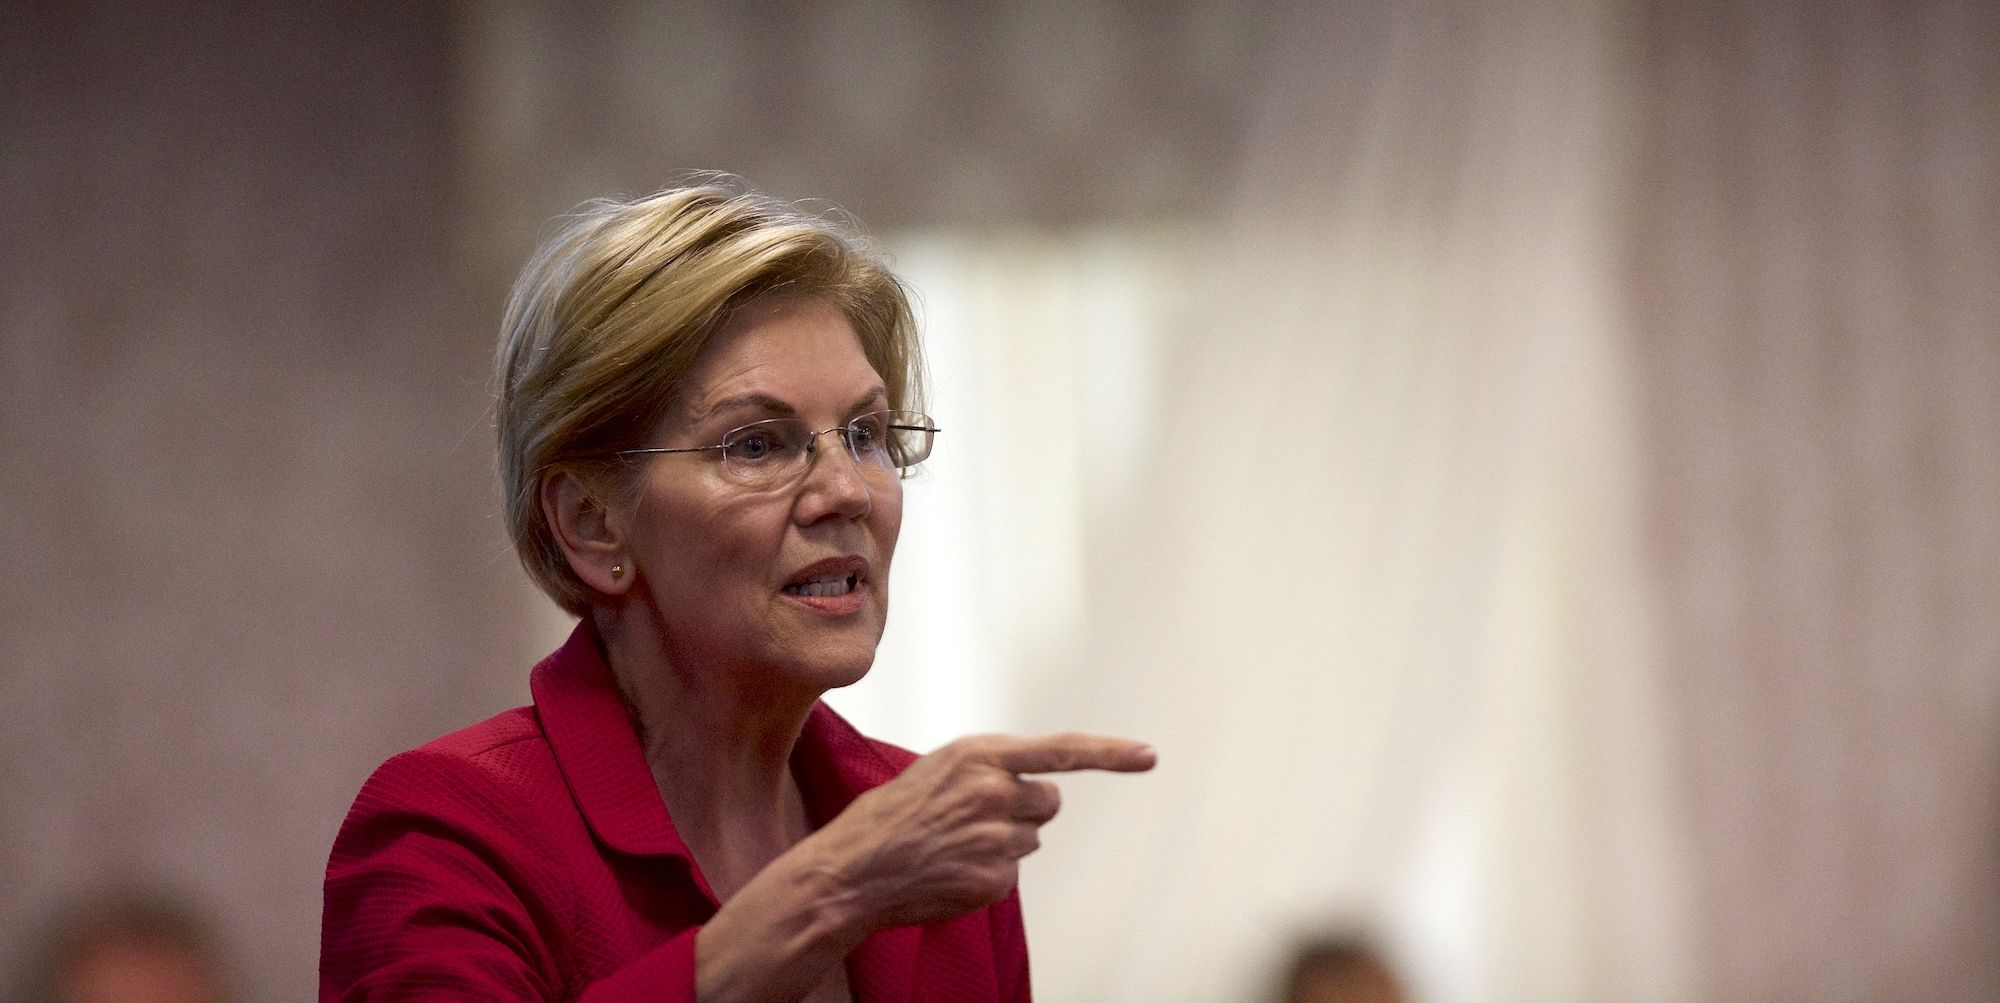 The 2020 Democrat announced she'd rejected a town hall invitation from the network on the back of her trip through Trump country.